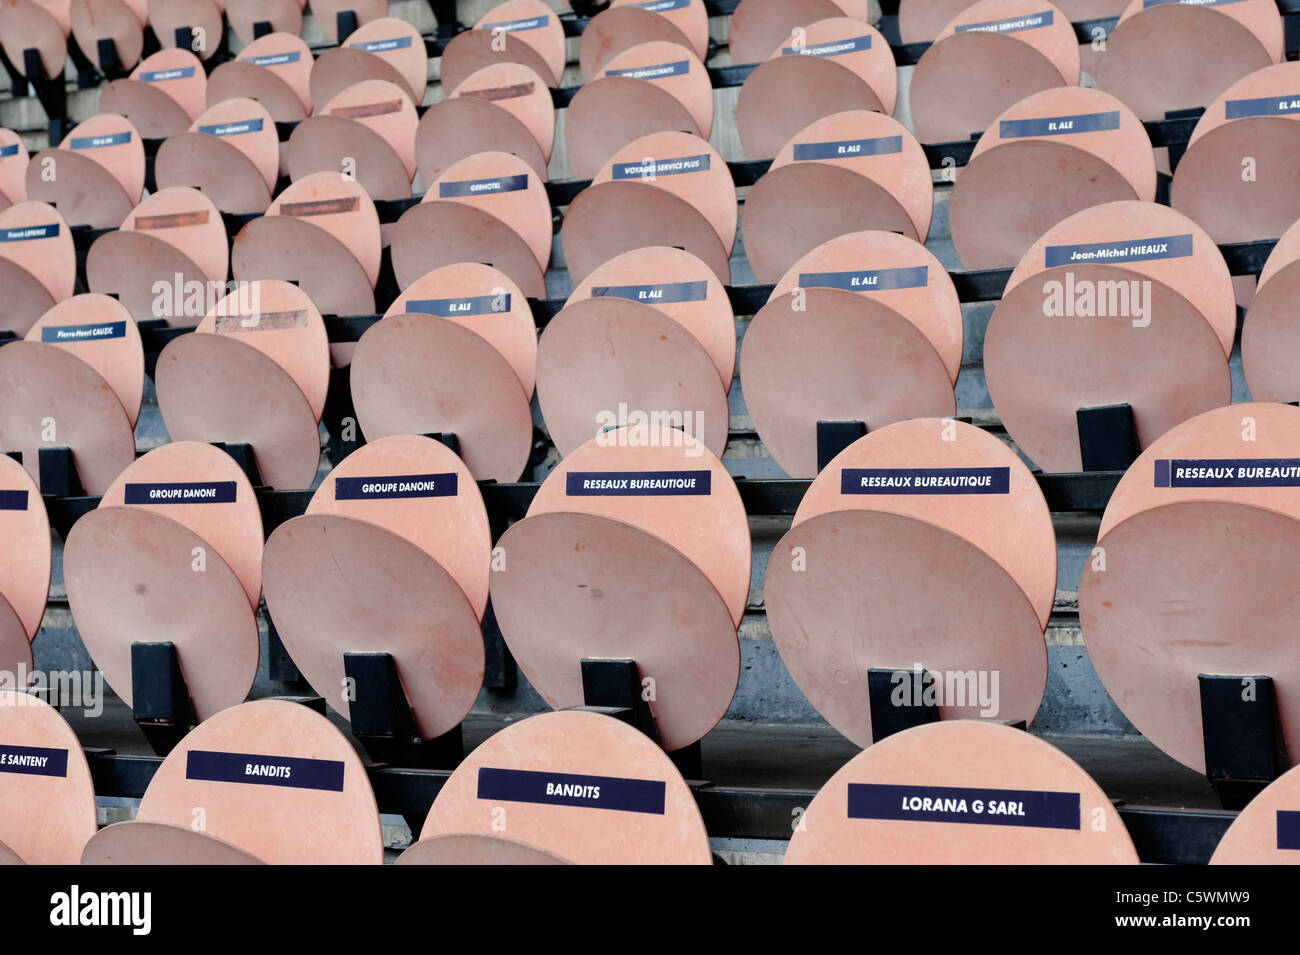 Seats at the 'Parc des Princes' stadium in paris, home Paris Saint-Germain, are marked with names of the - Stock Image